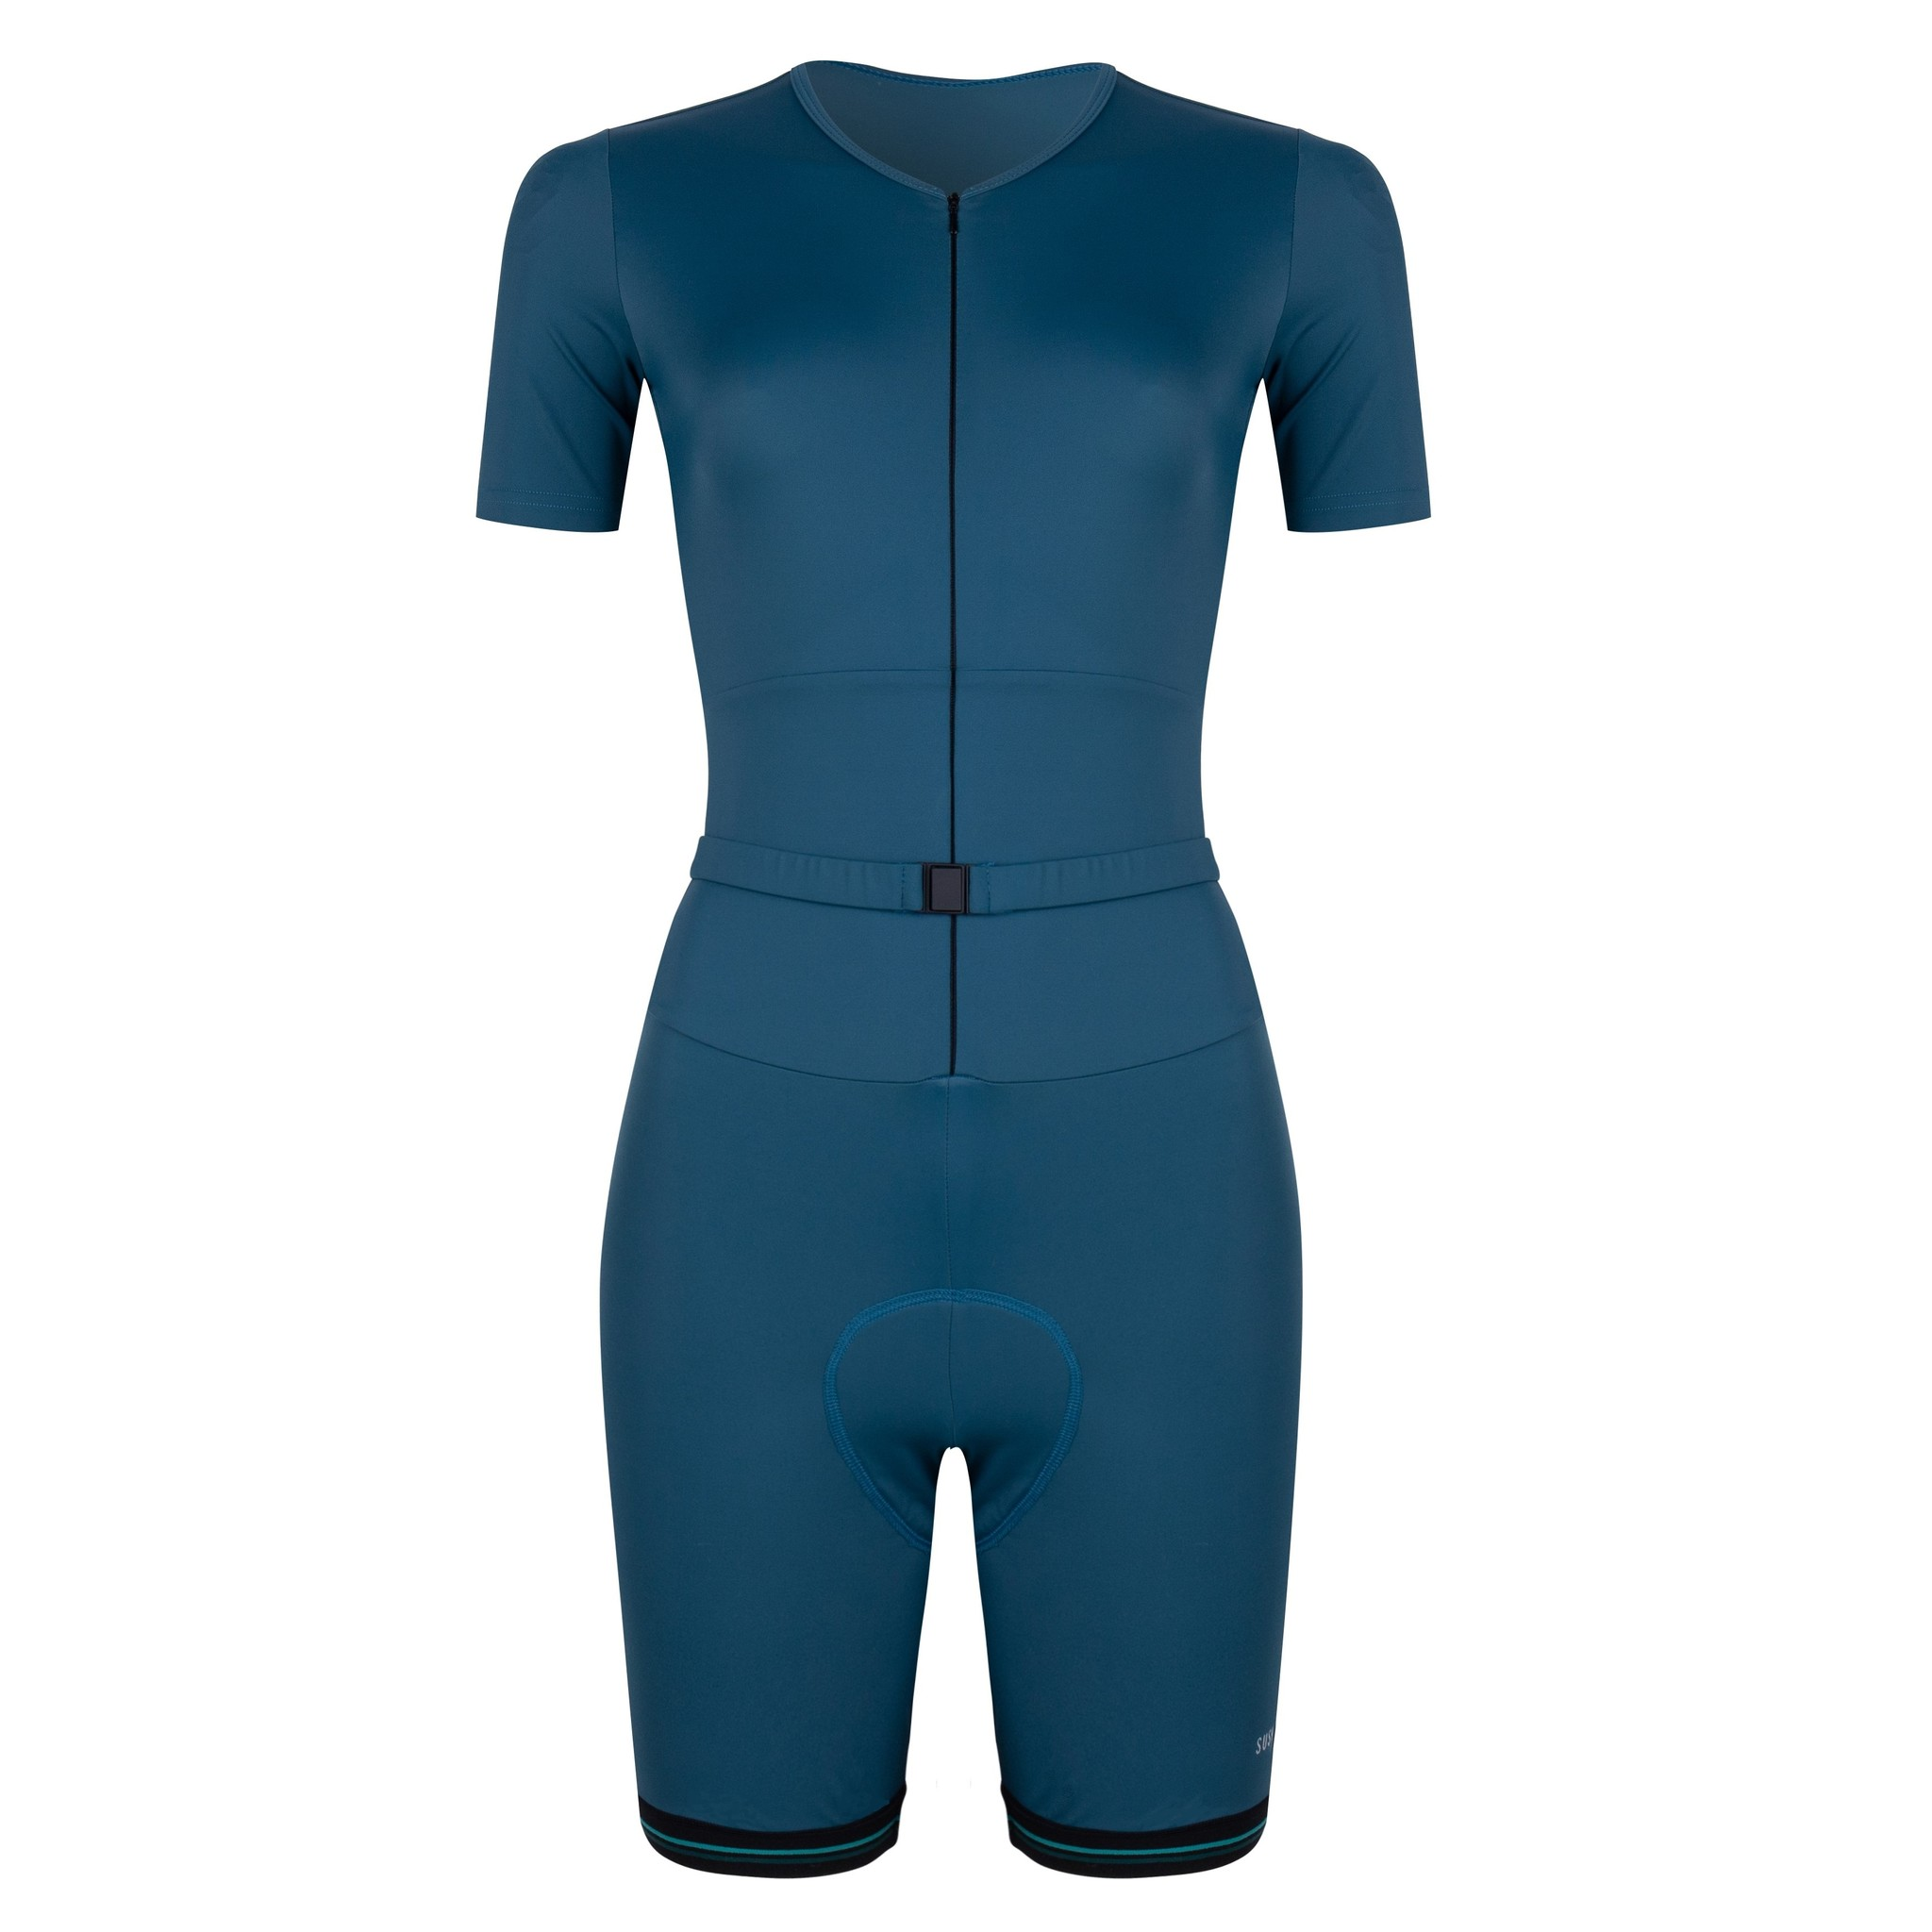 Women's cyclingsuit Jade green